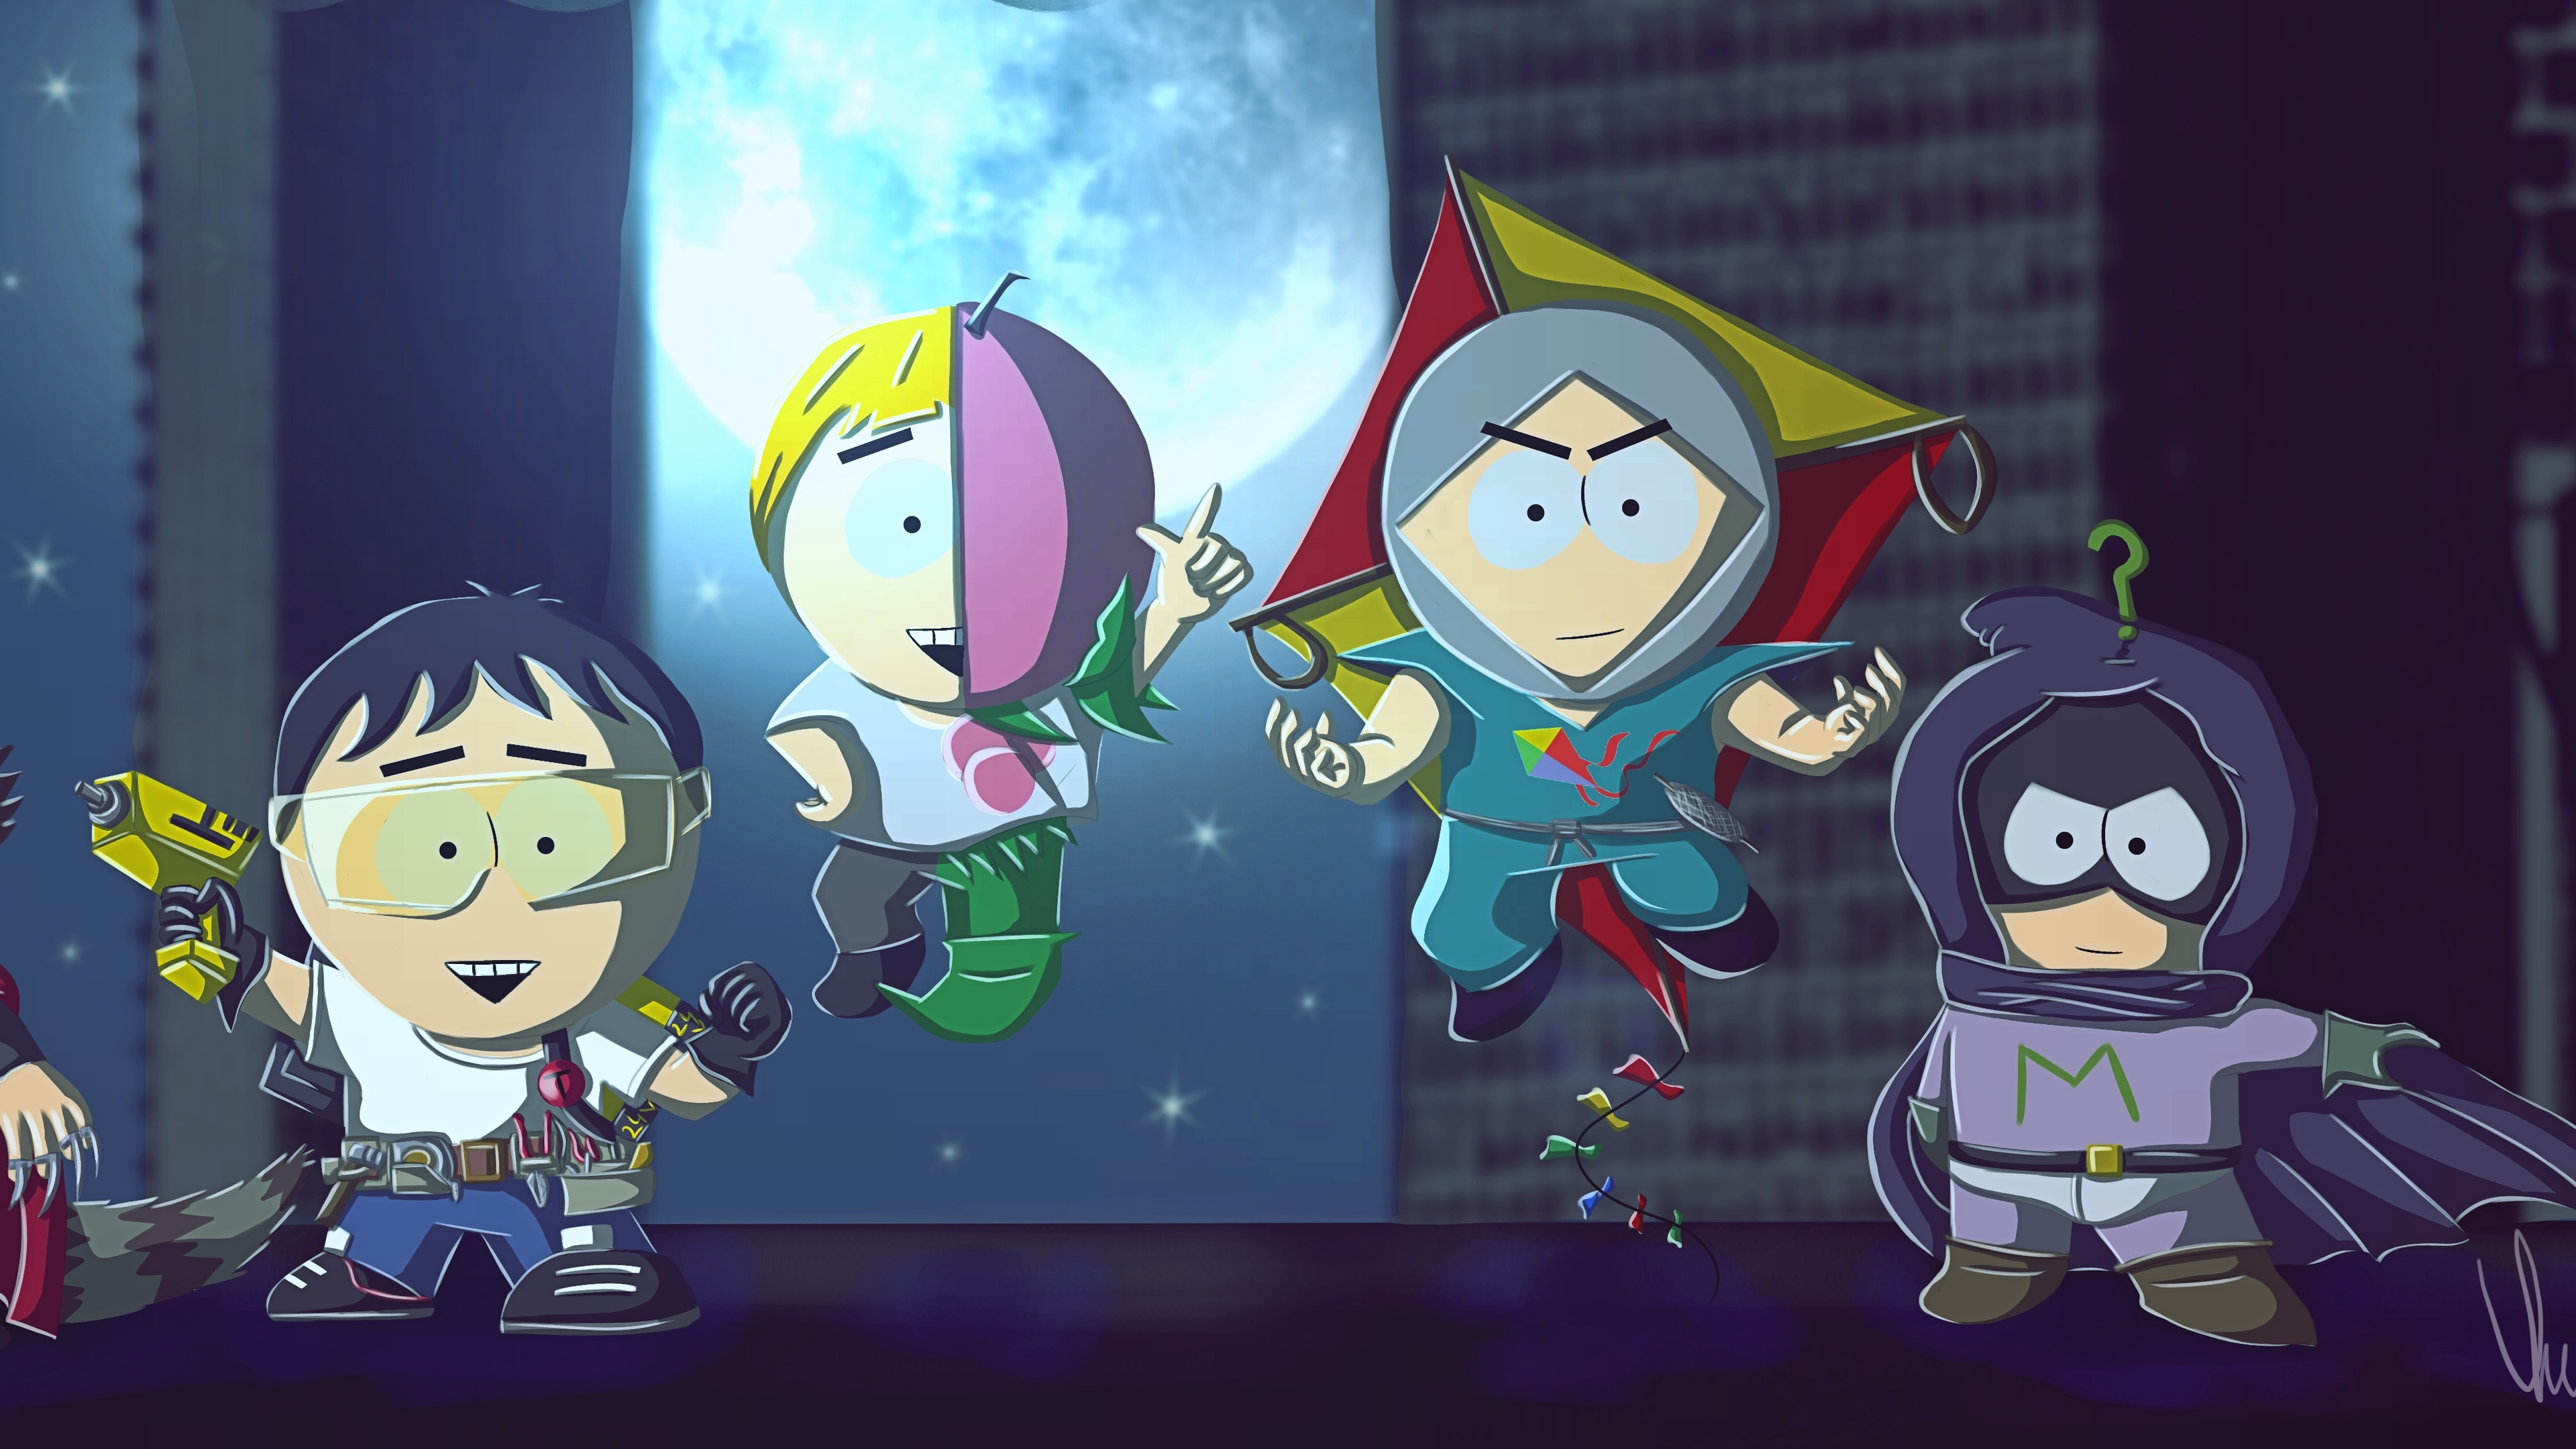 south park superheroes fan art 4k 1555208565 - South Park Superheroes Fan art 4k - tv shows wallpapers, south park wallpapers, hd-wallpapers, cartoons wallpapers, animated shows wallpapers, 4k-wallpapers